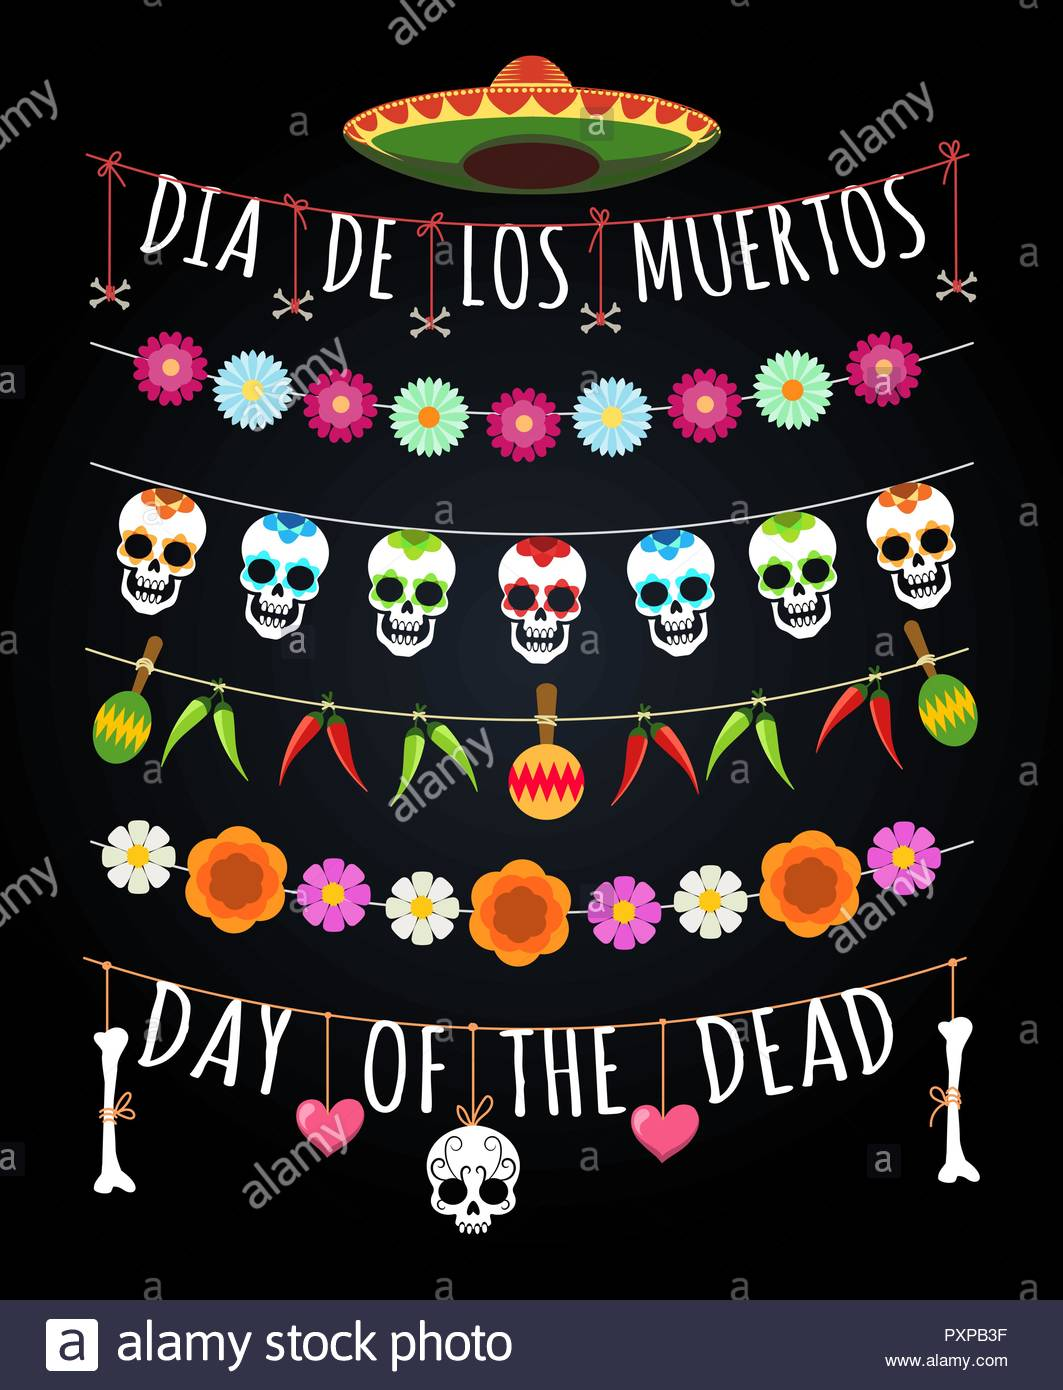 Dead day garlands. Mexican november deads feast borders isolated on.